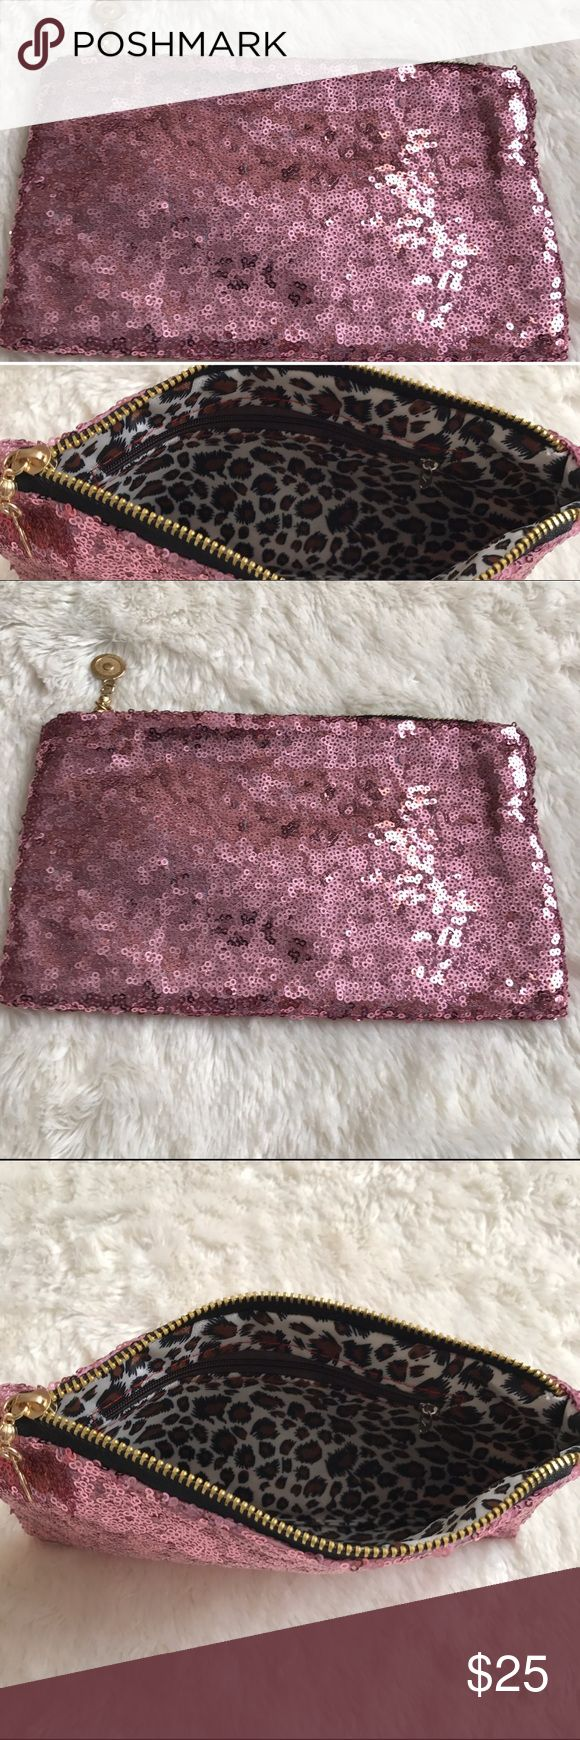 Pink Mauve Sequin Clutch THIS LISTING IS FOR THE PINK MAUVE CLUTCH ONLY * Stumped on what to wear with your next outfit? You'll never need to buy another clutch again! The inside has a beautiful leopard print fabric with an zipper pocket for more storage. External zipper is gold with a small decorative tab  MATERIALS: Lining: Polyester External: Sequins/Polyester   P U R P O S E S: -Bachelorette Party Gift/Favor -Bridal Party Gift -Bridal Shower Gift/Favor -Wedding Guest Clutch -Everyday…